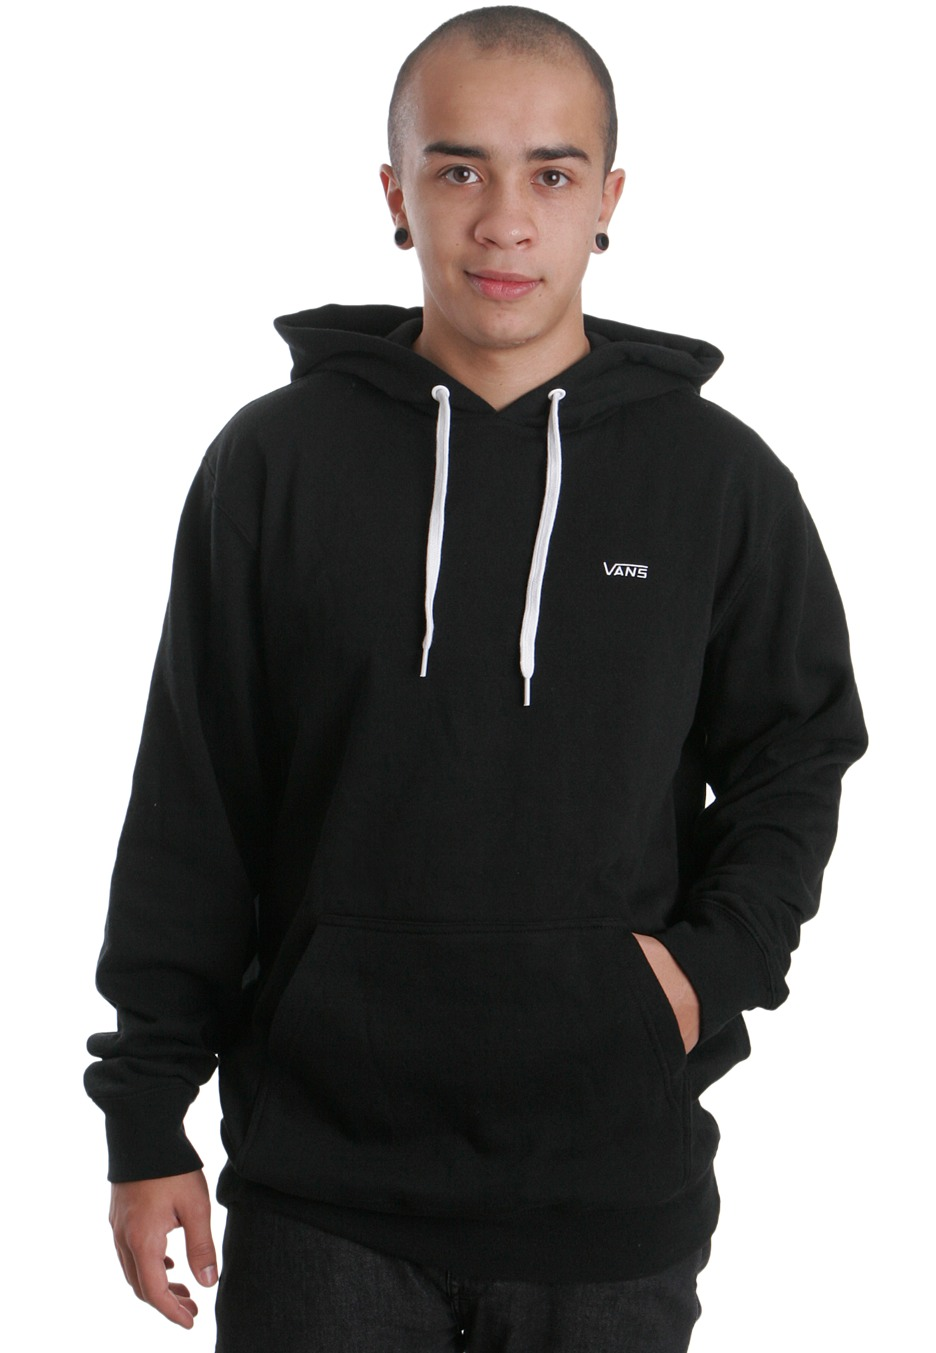 b8d8c25cf1e973 Vans - Core Basics - Hoodie - Impericon.com UK